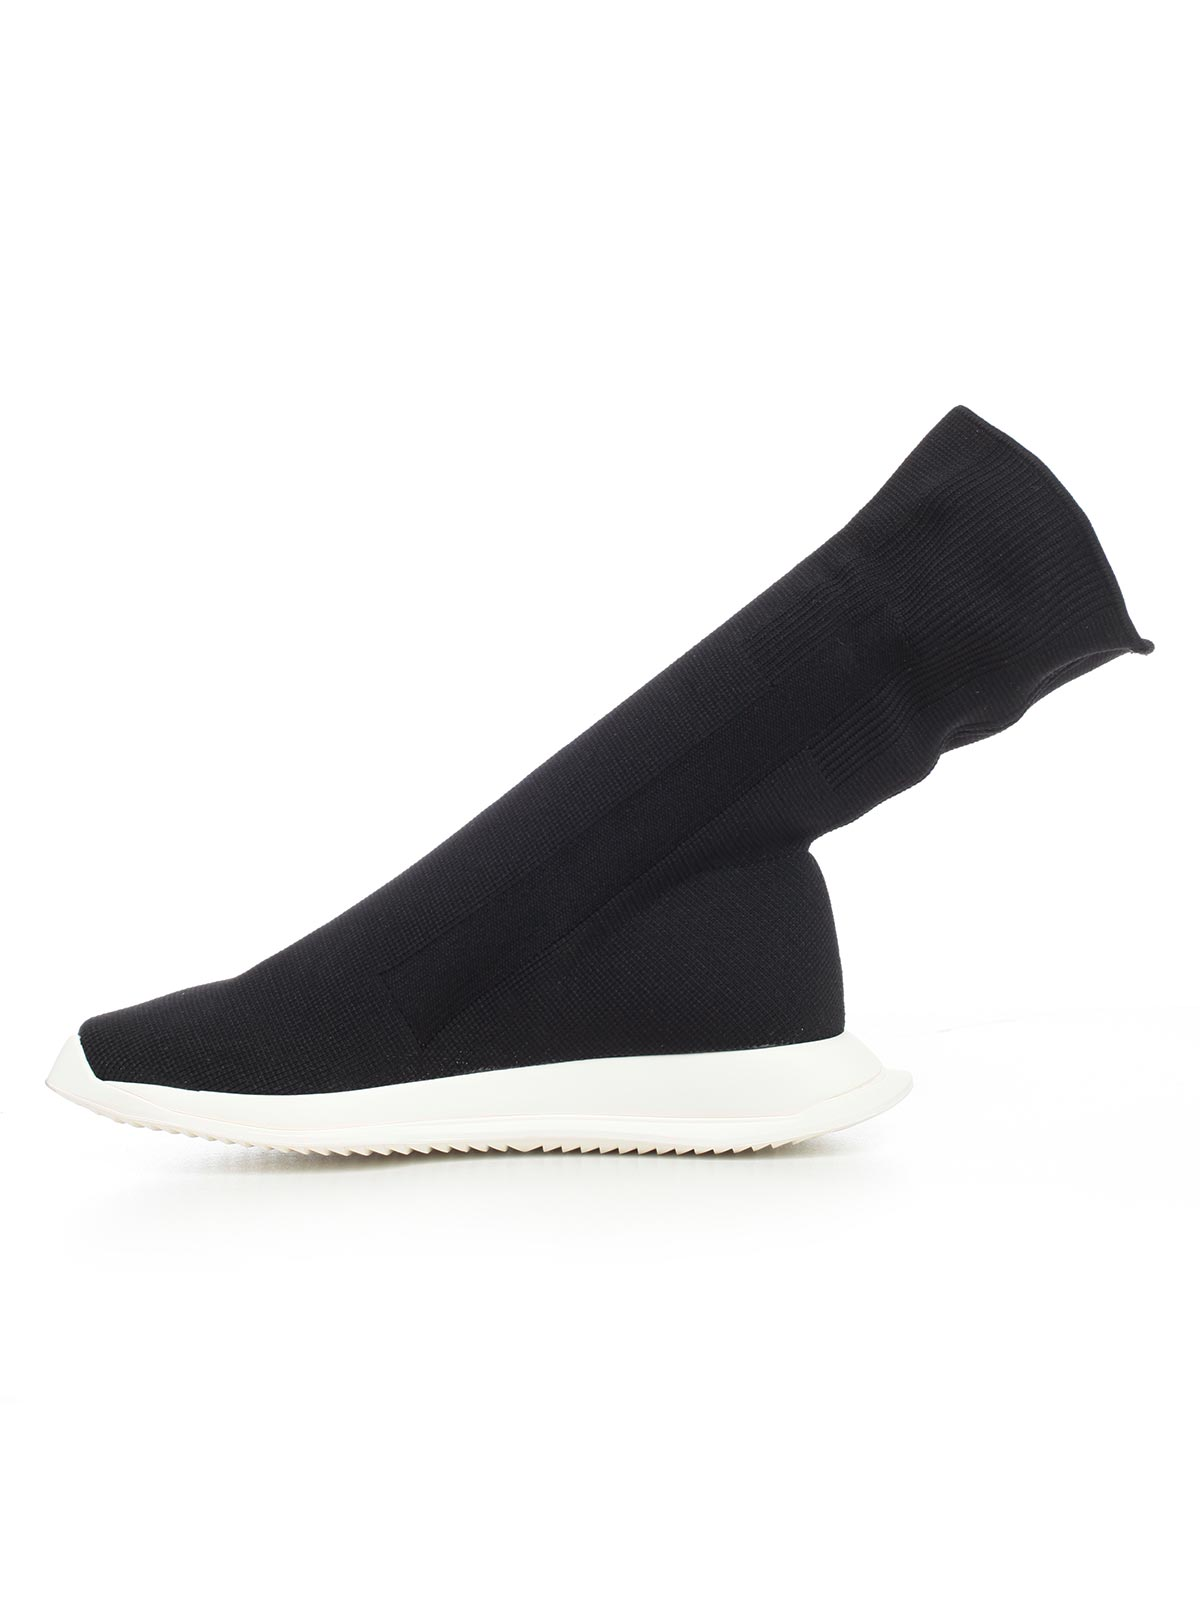 Picture of Rick Owens Drkshdw Shoes